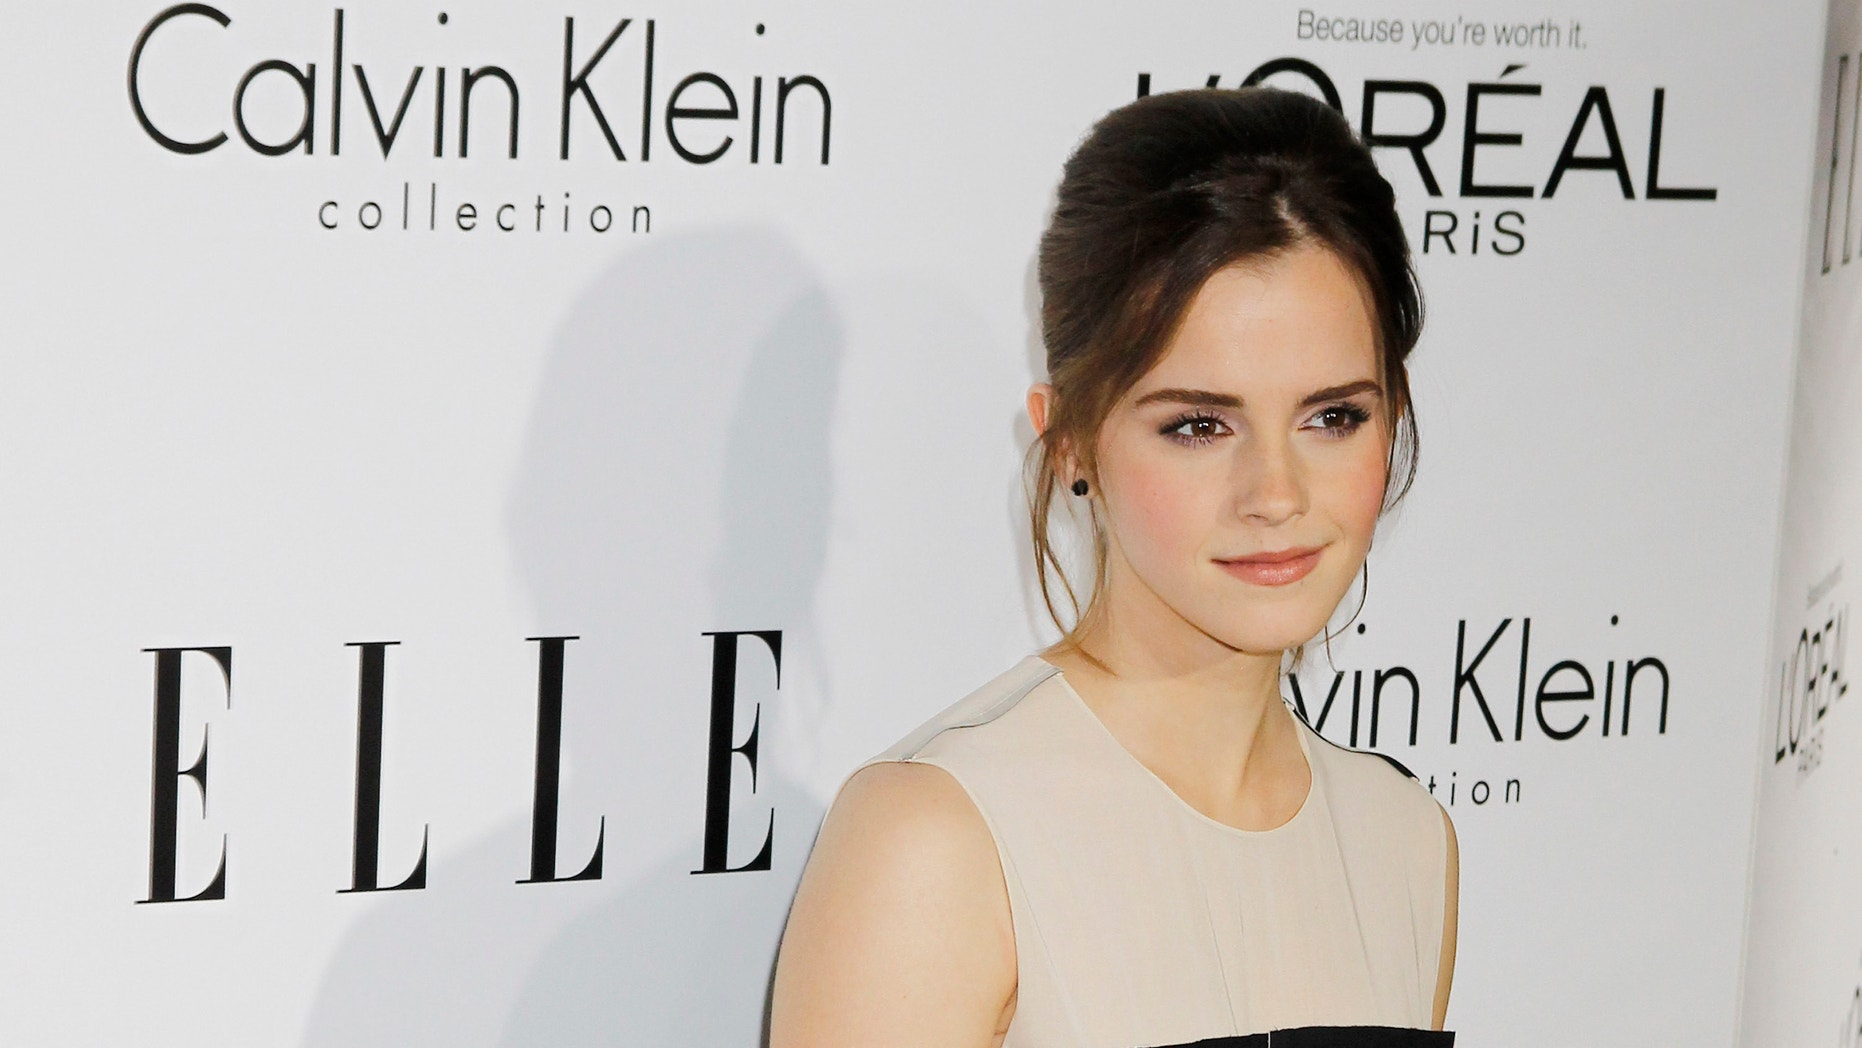 Honoree Emma Watson poses as she arrives at the 19th Annual ELLE Women in Hollywood dinner in Beverly Hills, California October 15, 2012. The event honors women who have had a profound impact on the film industry.